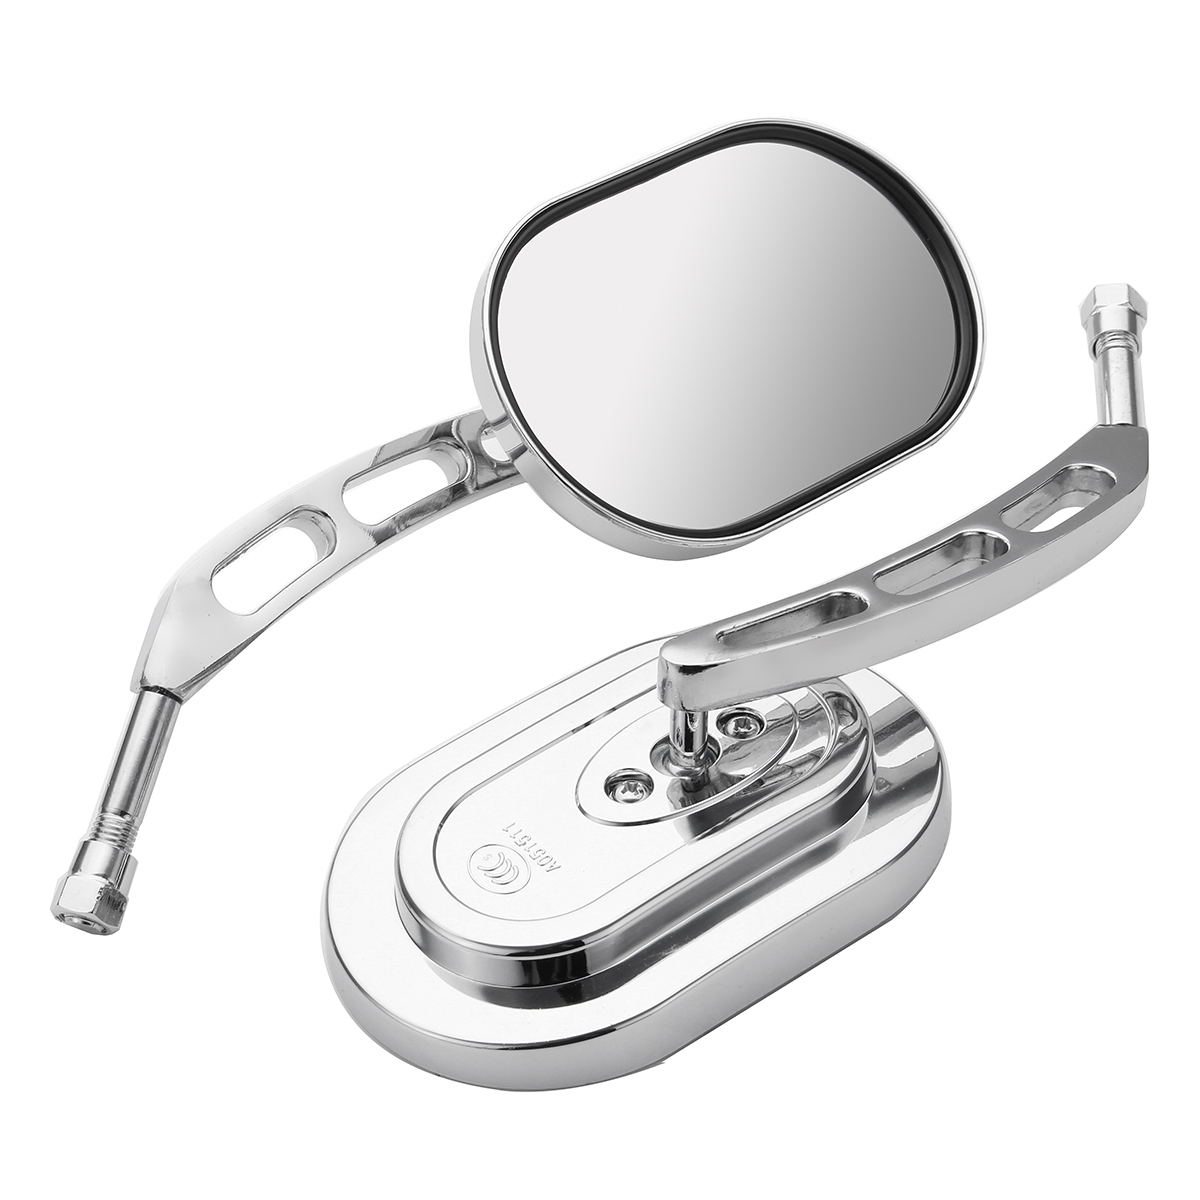 10mm Universal Chrome Motorcycle Mirrors Rear View Side Mirror For Harley/Suzuki/Honda